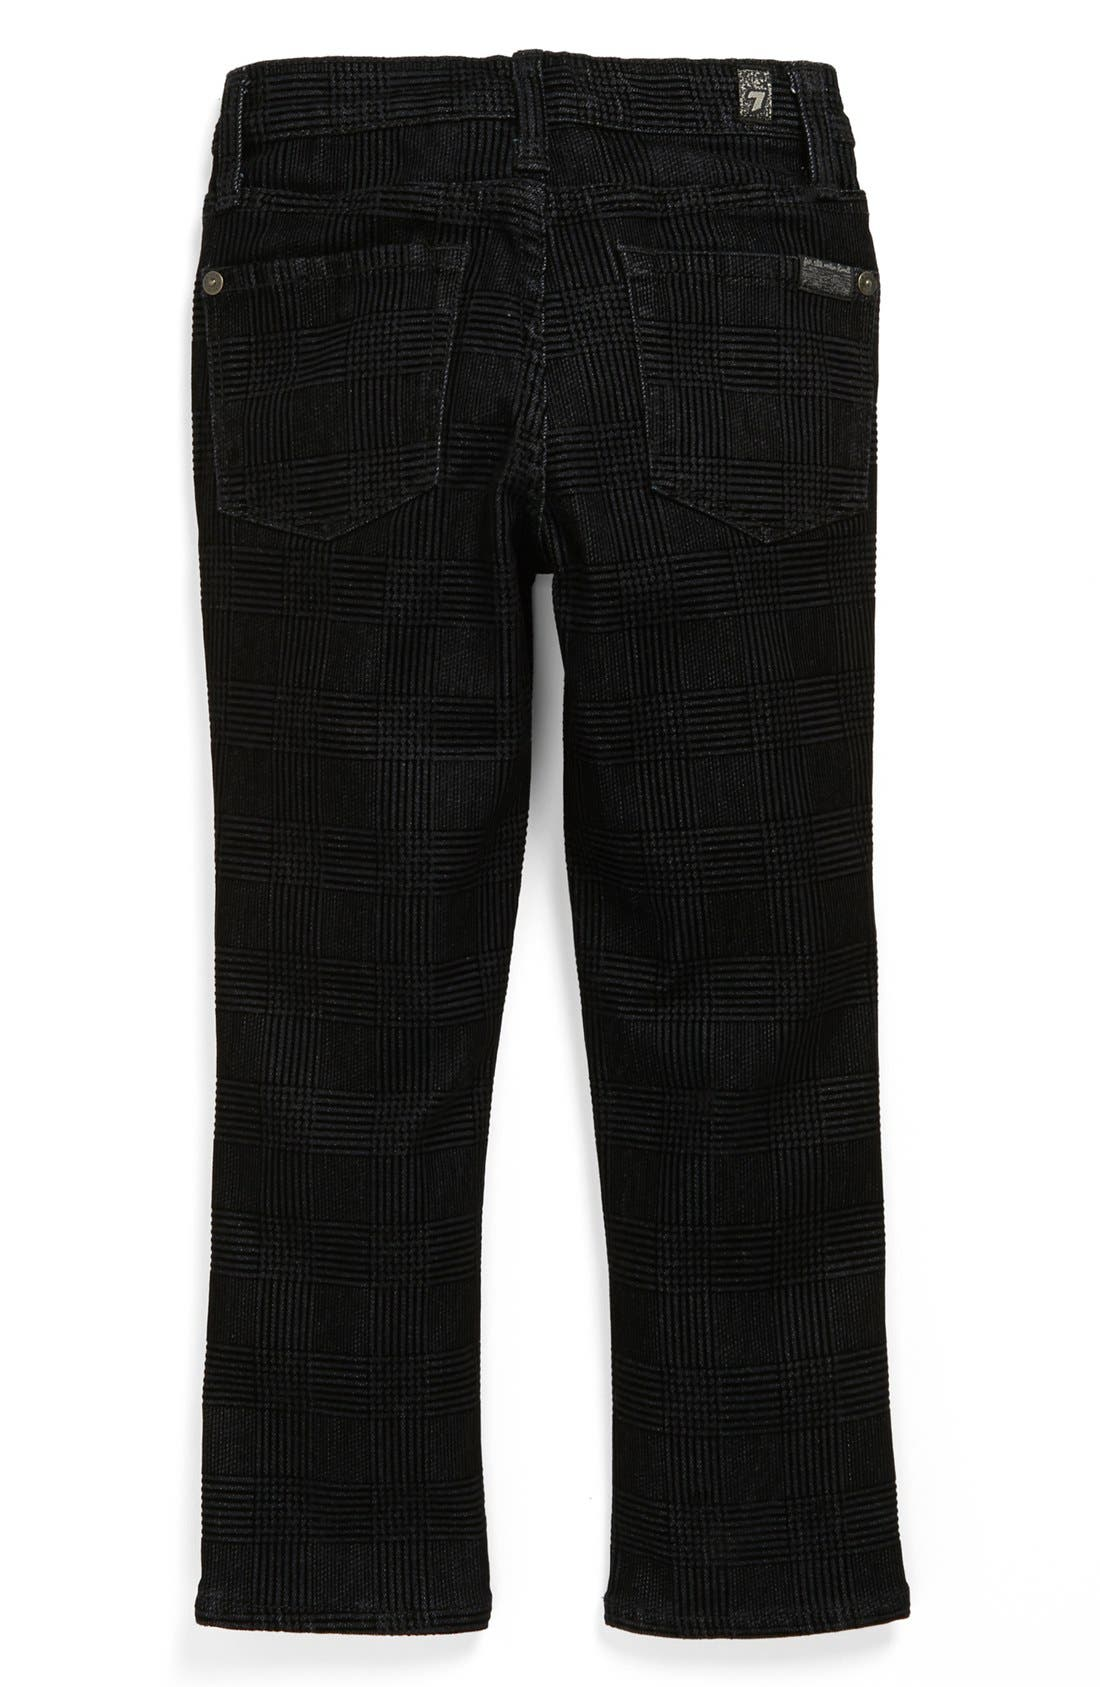 Main Image - 7 For All Mankind® 'Slimmy' Flocked Slim Fit Jeans (Toddler Boys)